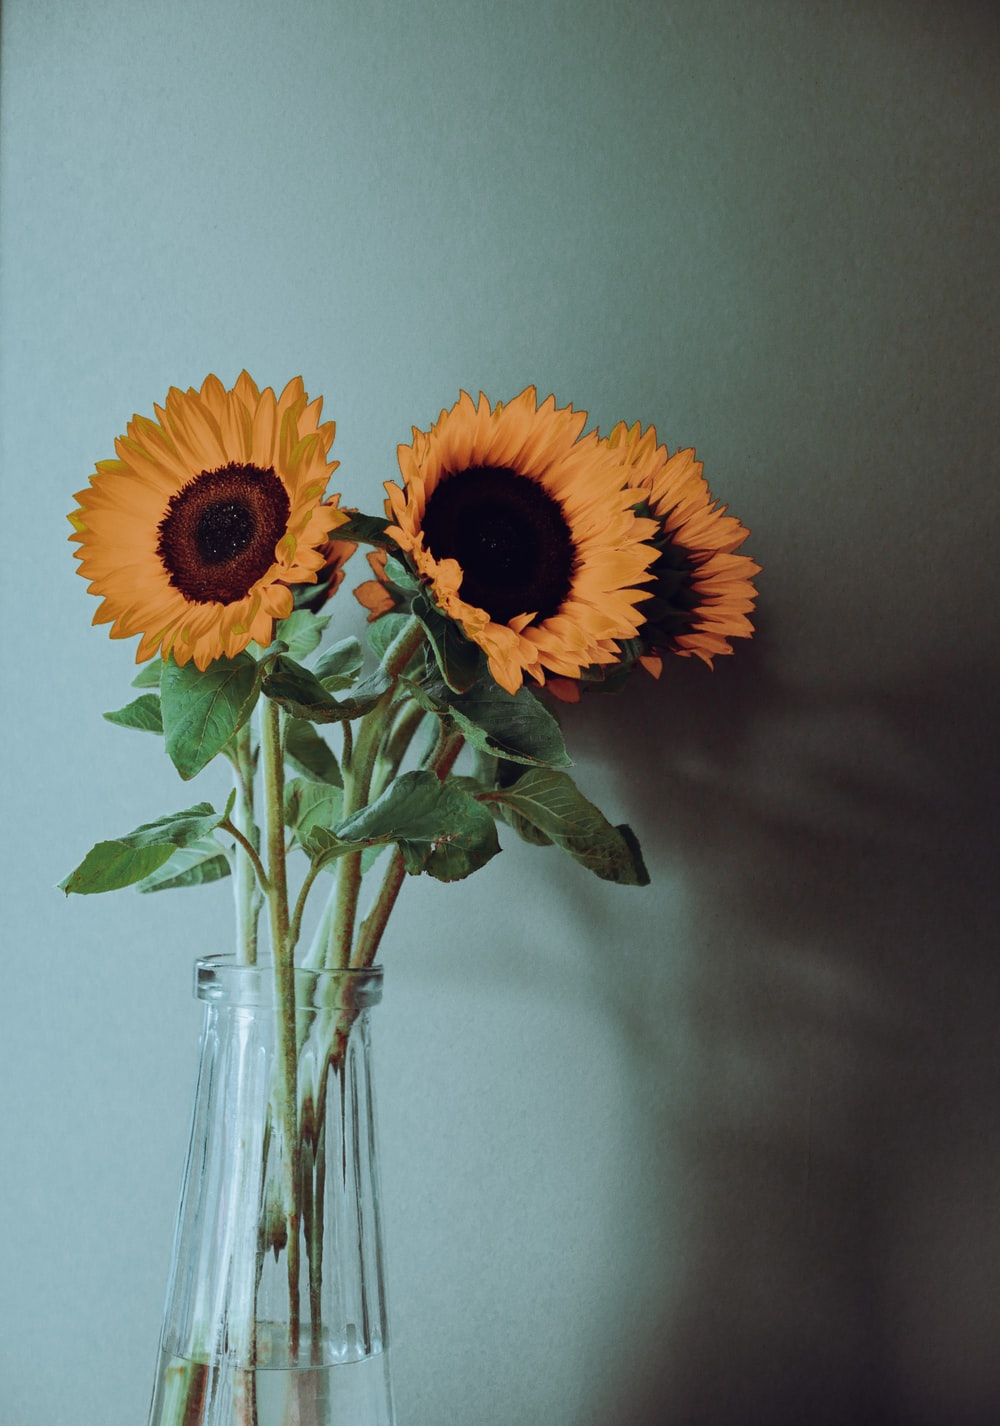 sunflower in clear glass vase